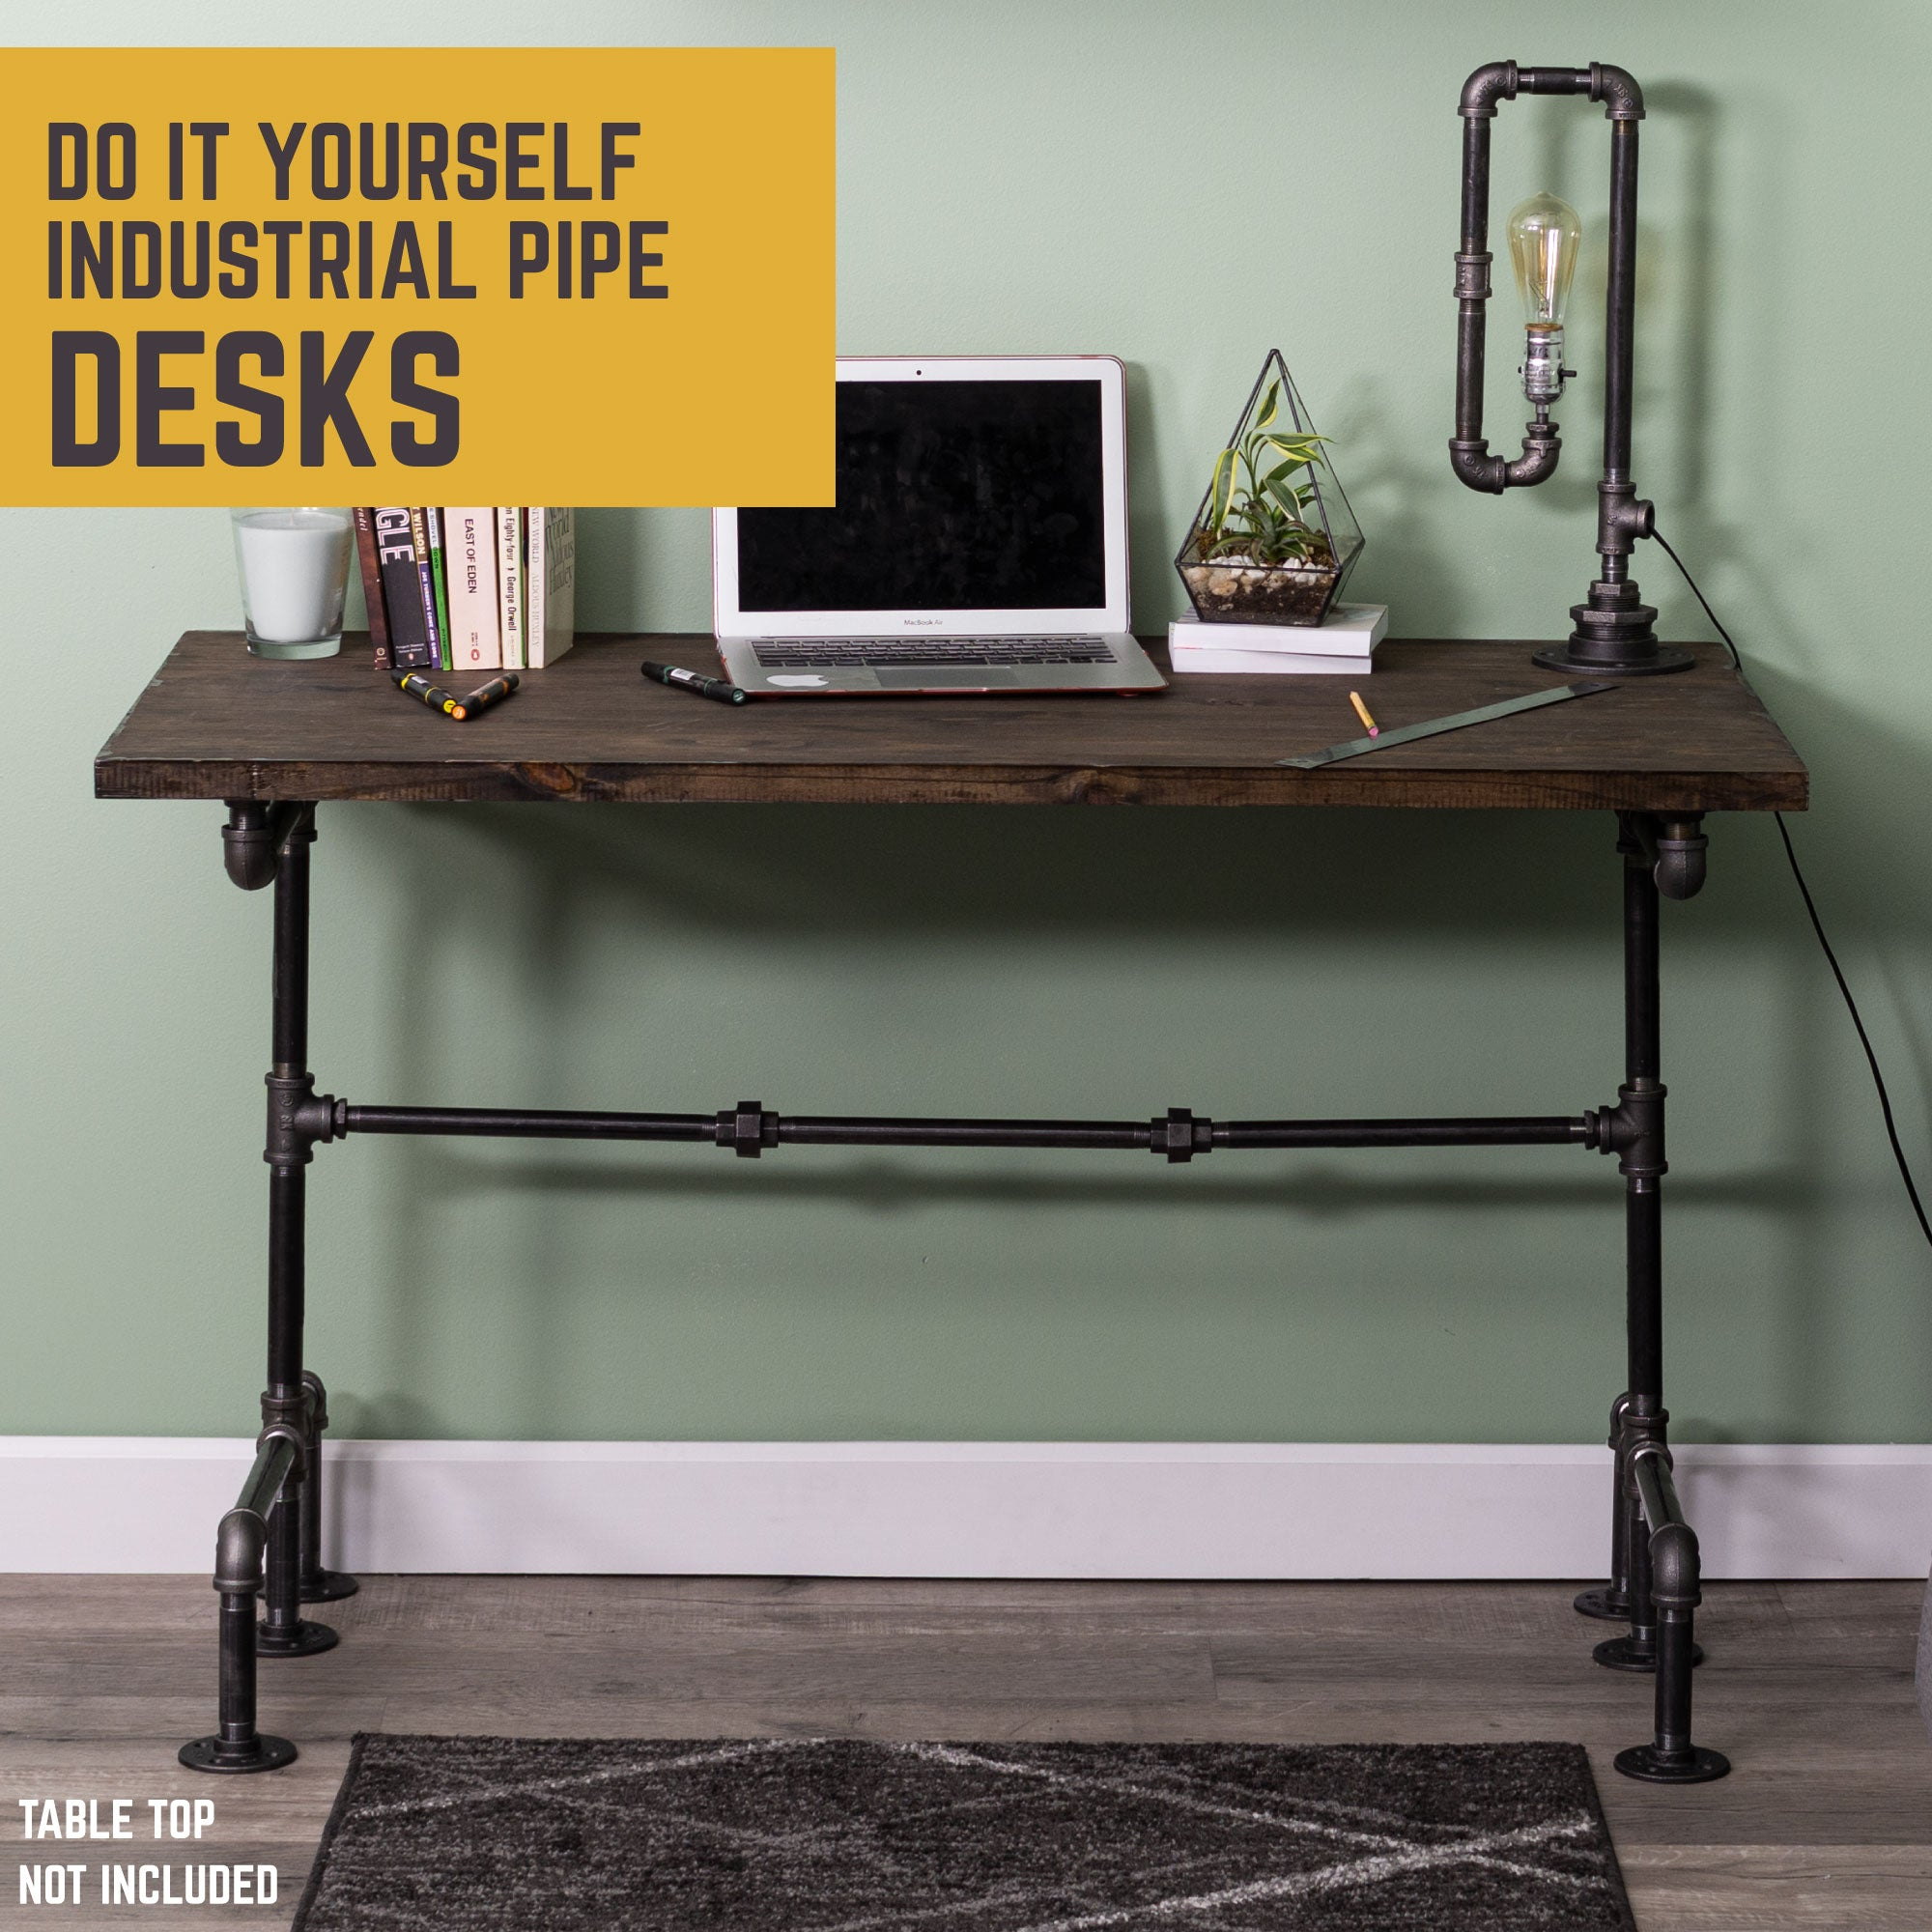 M Design Desk By PIPE DECOR